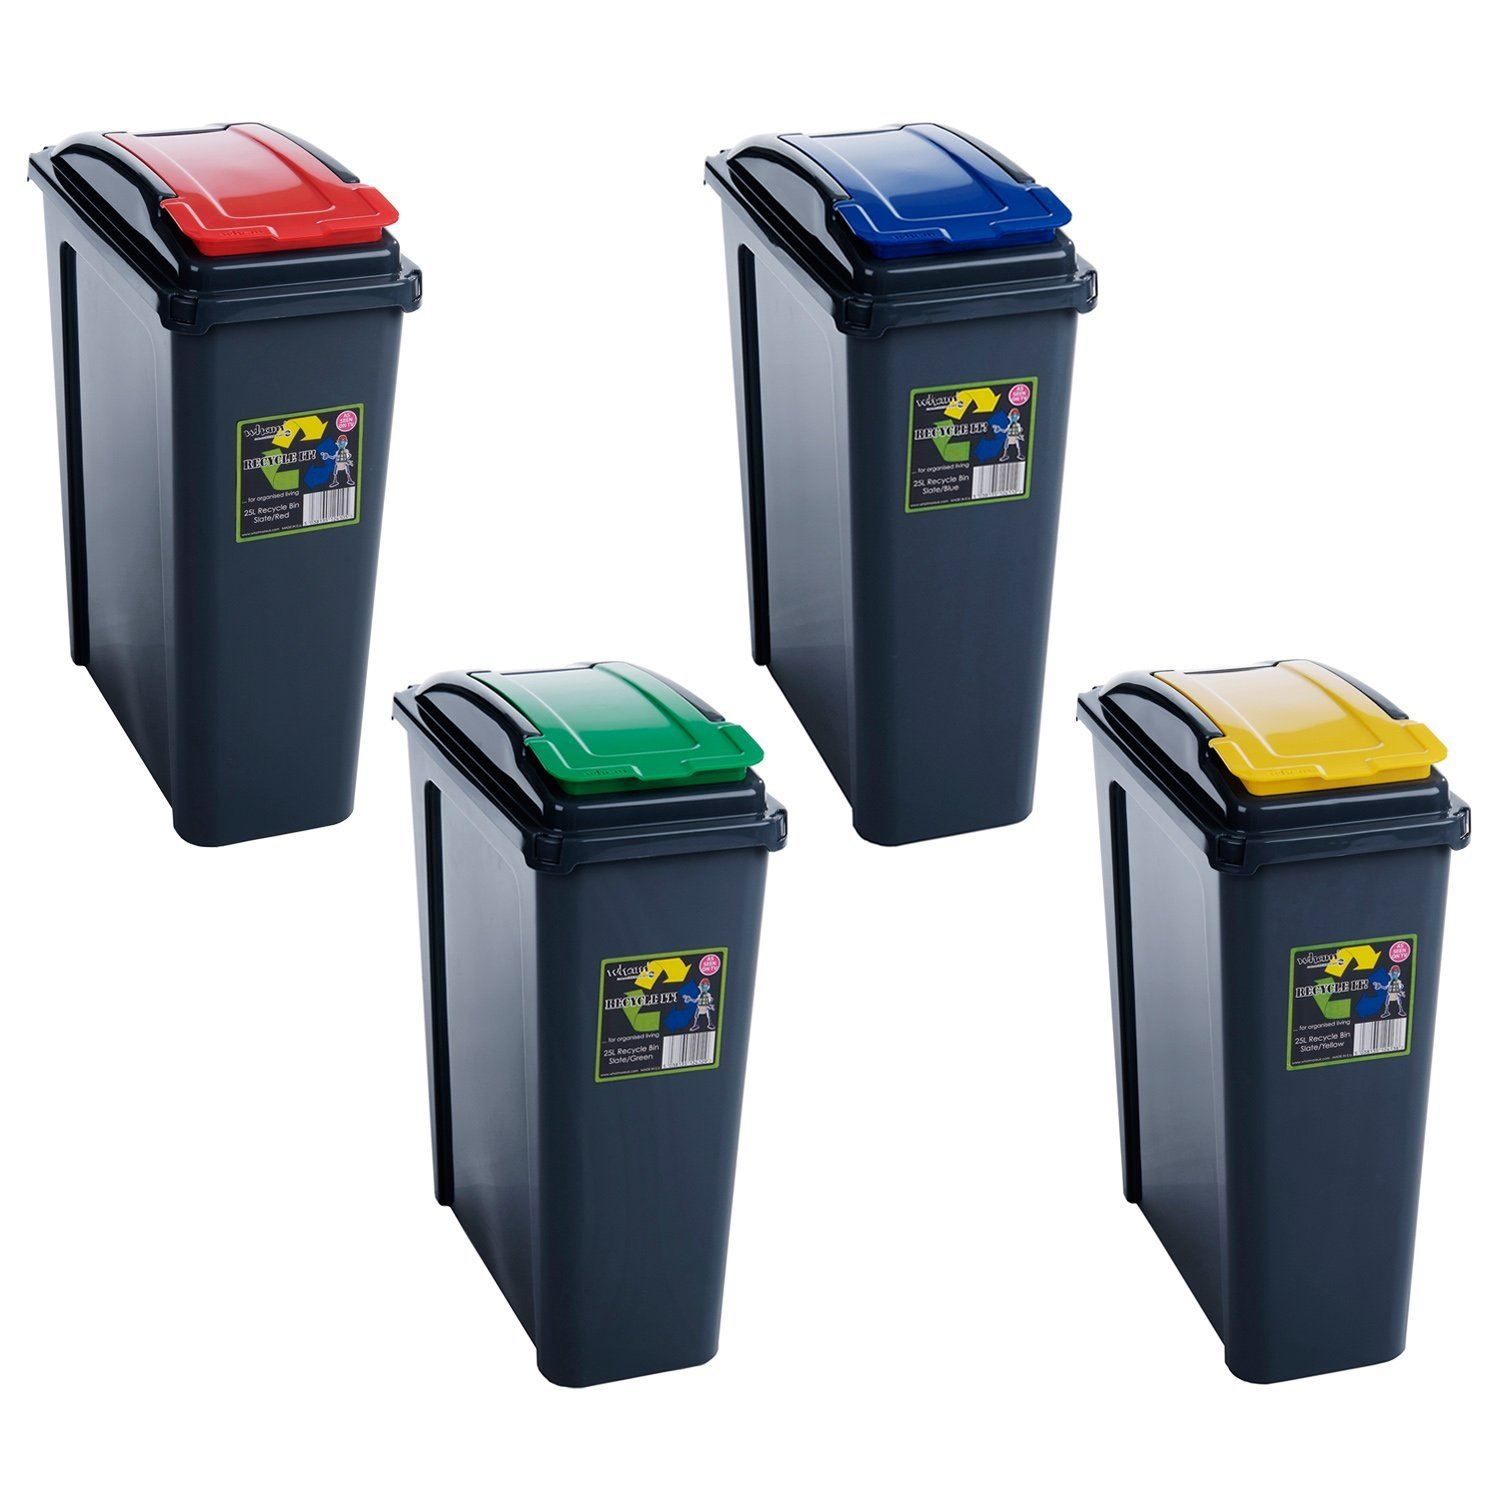 25l 50l plastic recycle recycling bin lid kitchen rubbish dustbin garden waste ebay. Black Bedroom Furniture Sets. Home Design Ideas